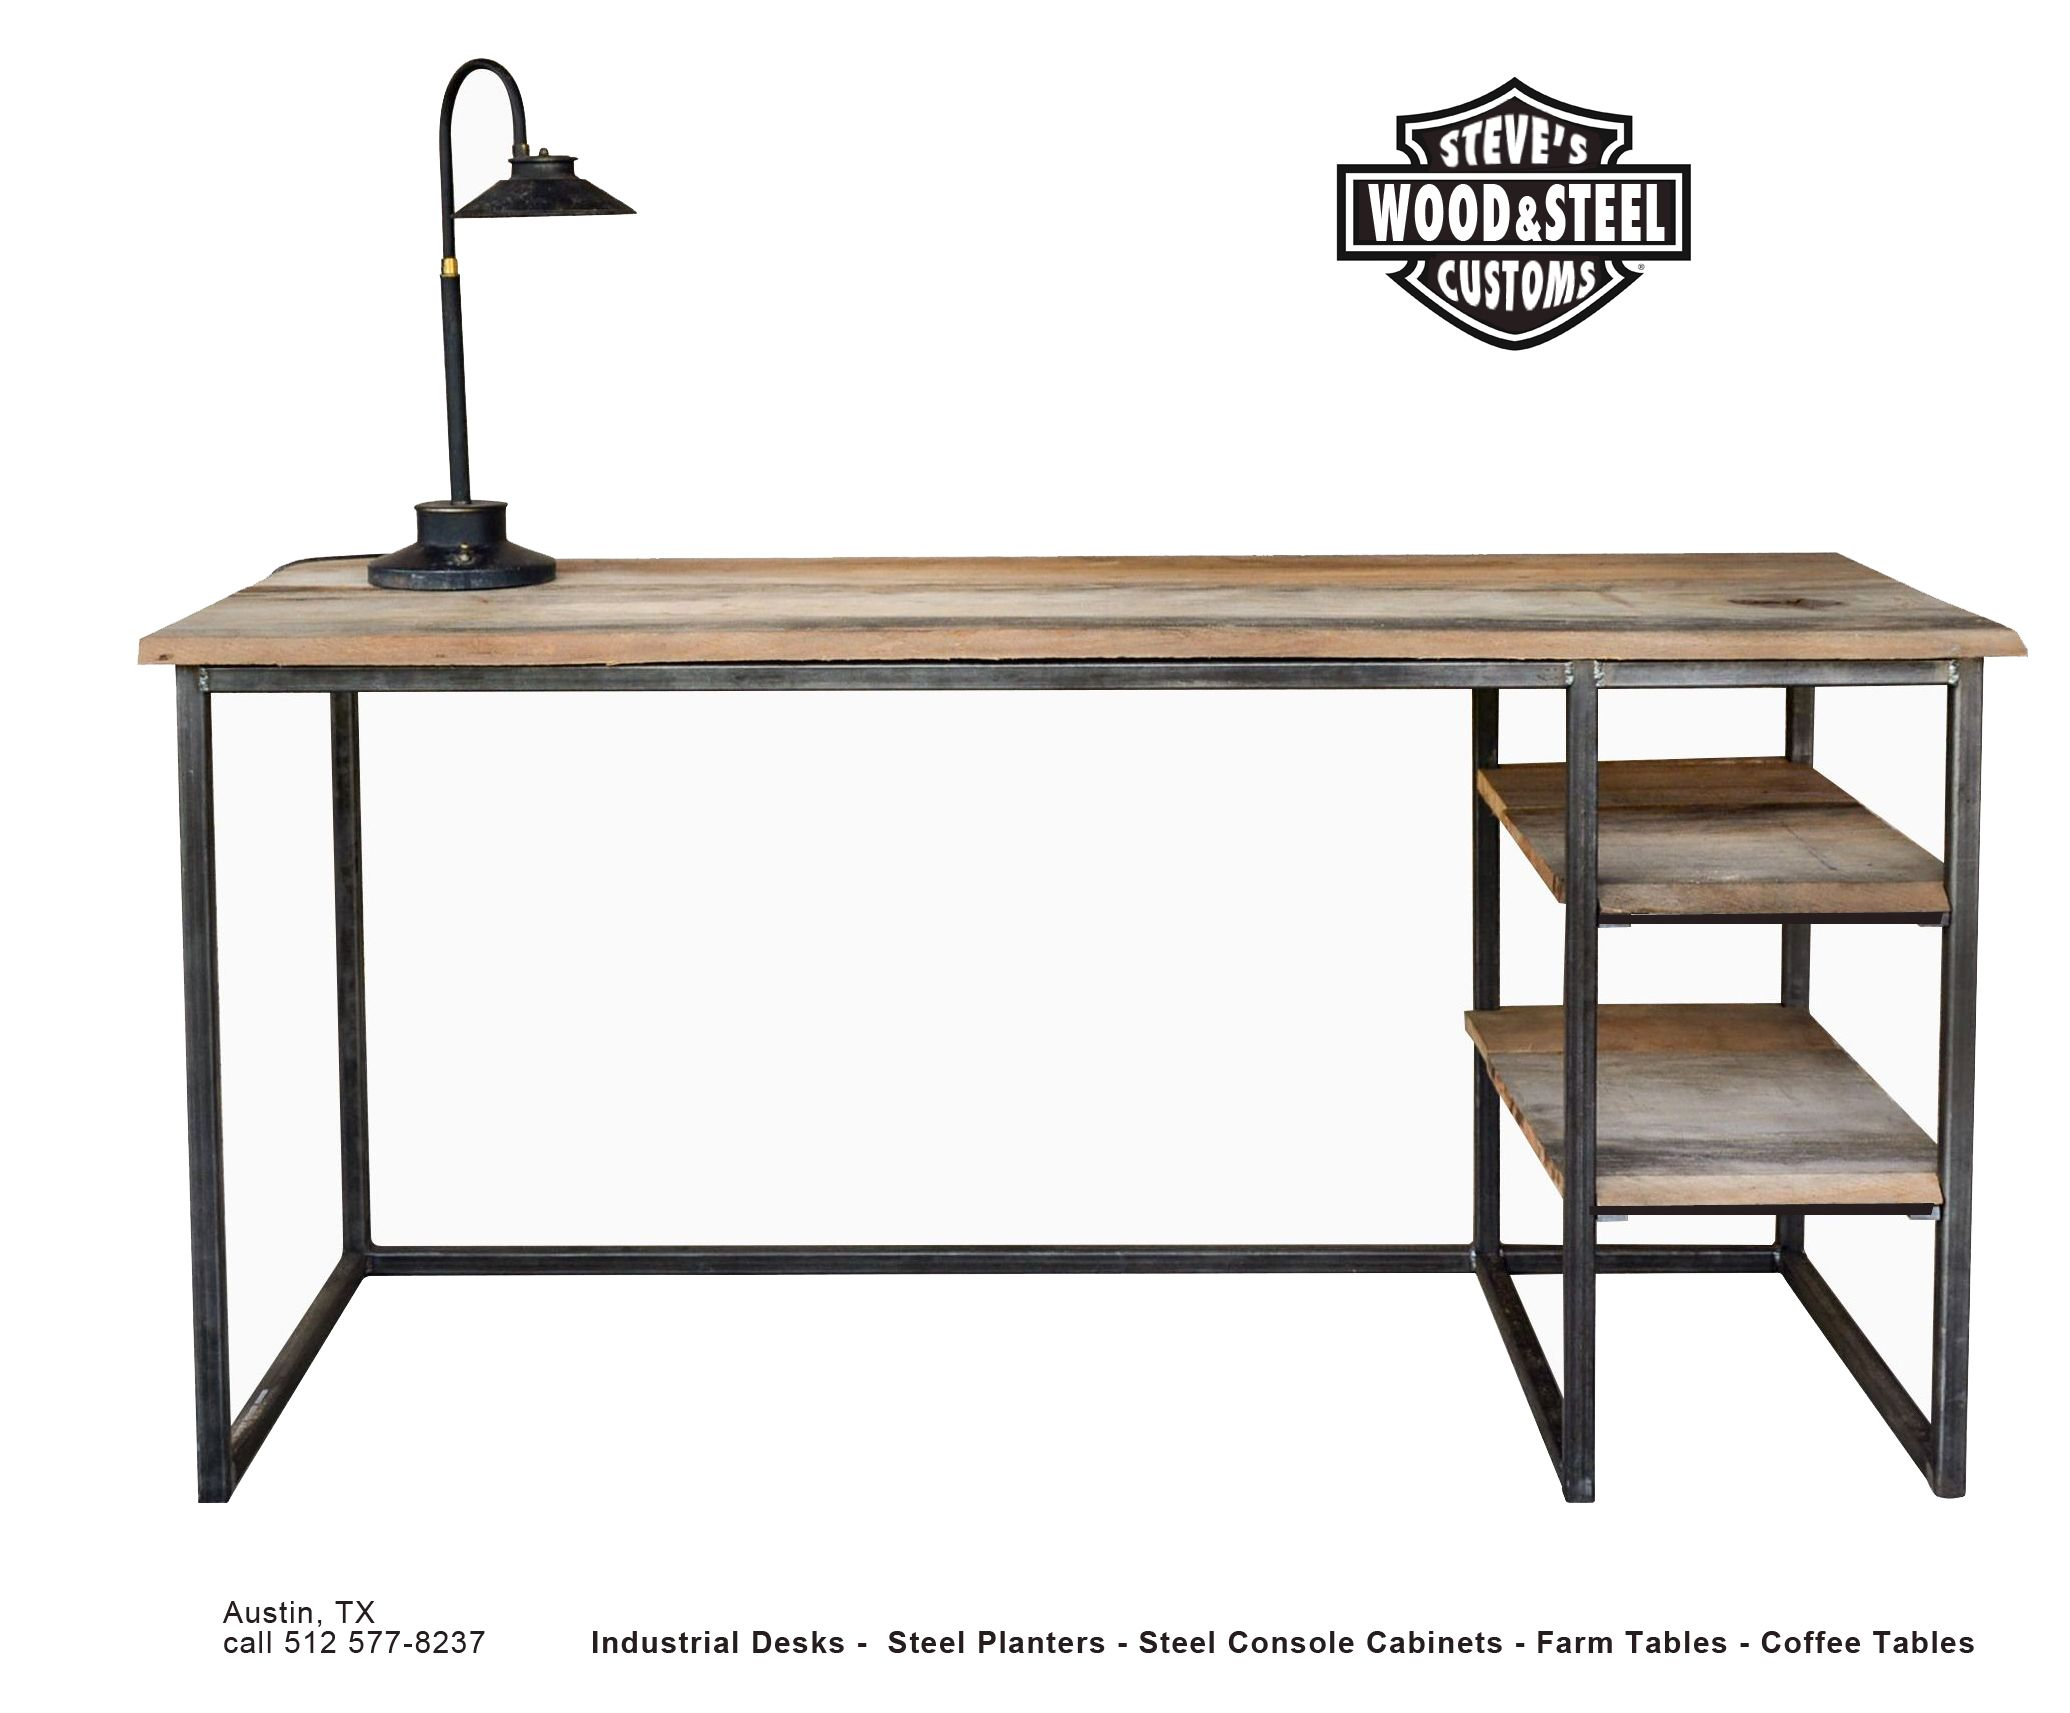 Customs Desk Buy A Custom Made Industrial Reclaimed Wood Desk Made To